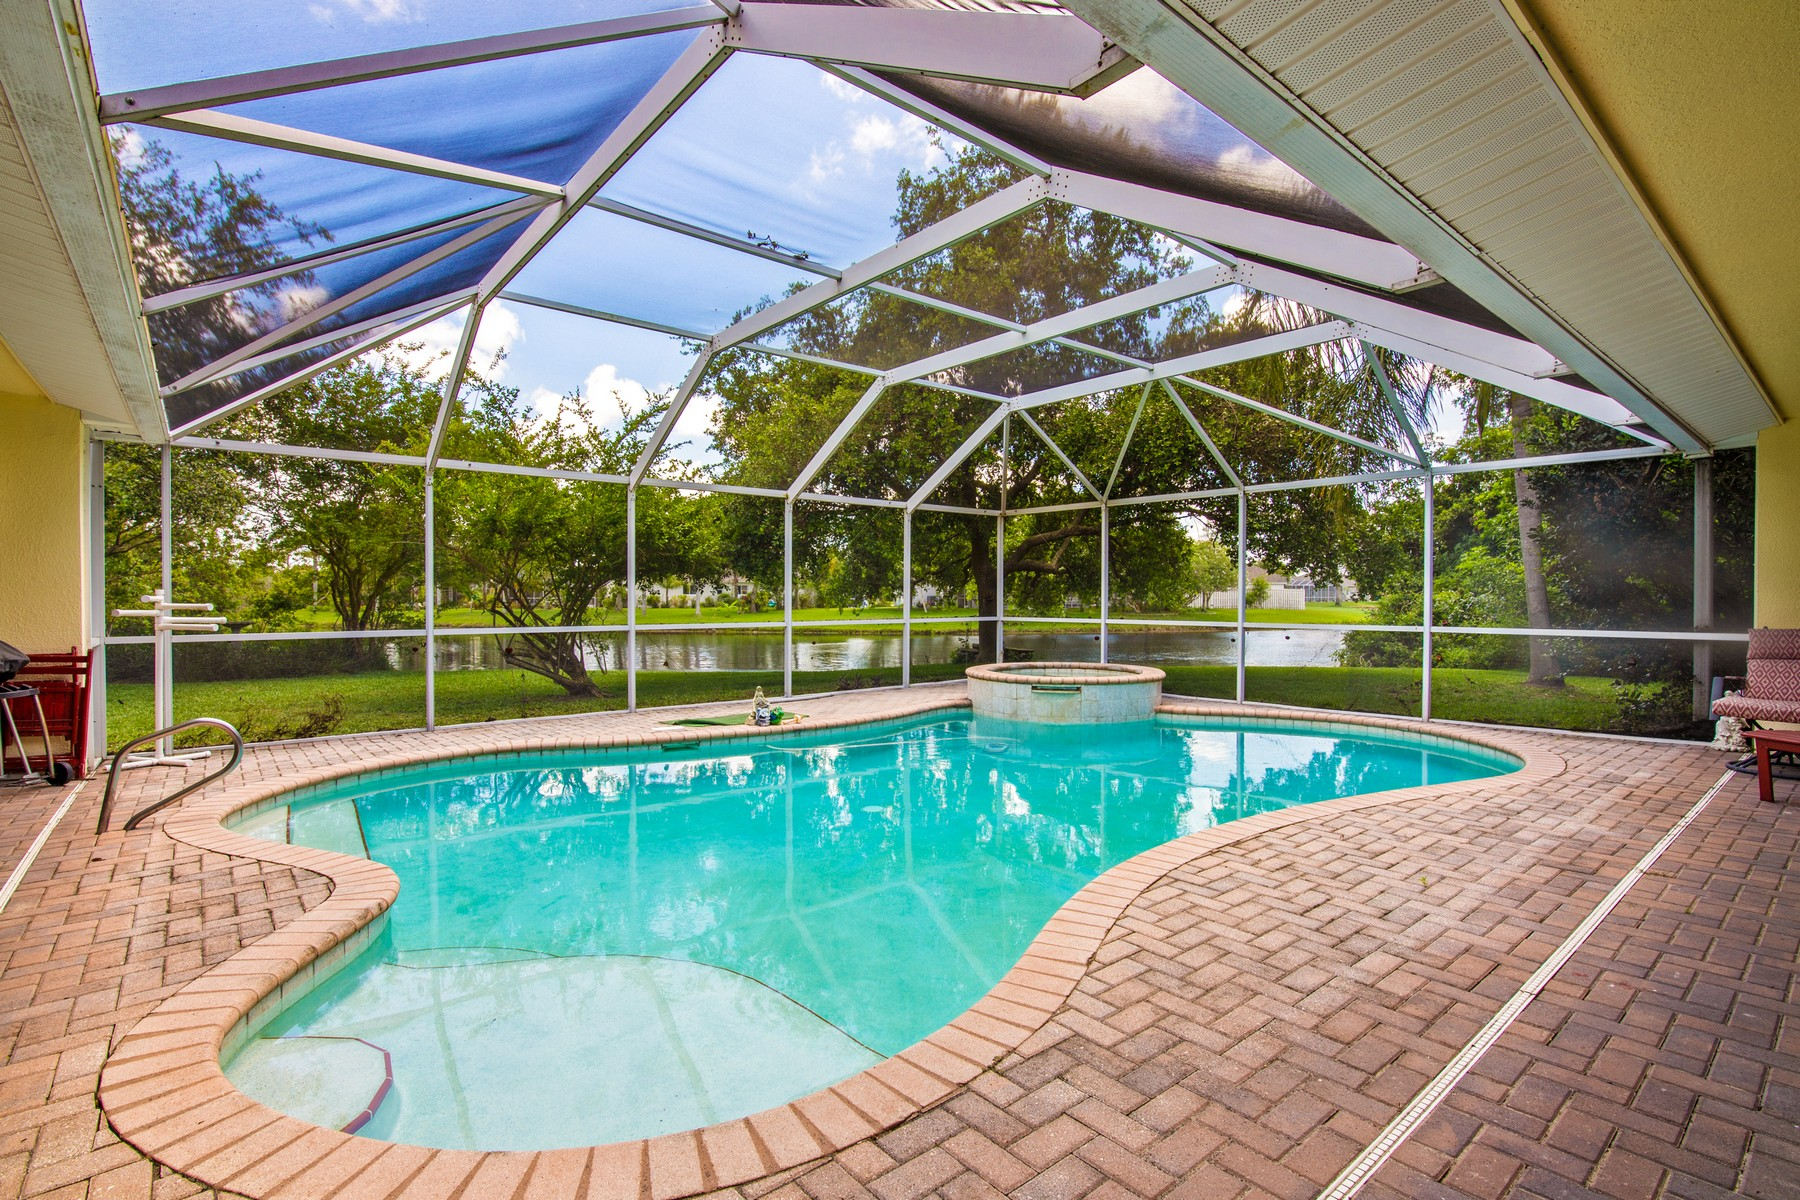 Additional photo for property listing at Charming Lake Front Home Brimming with Personality 1643 Quinn Drive Rockledge, Florida 32955 United States